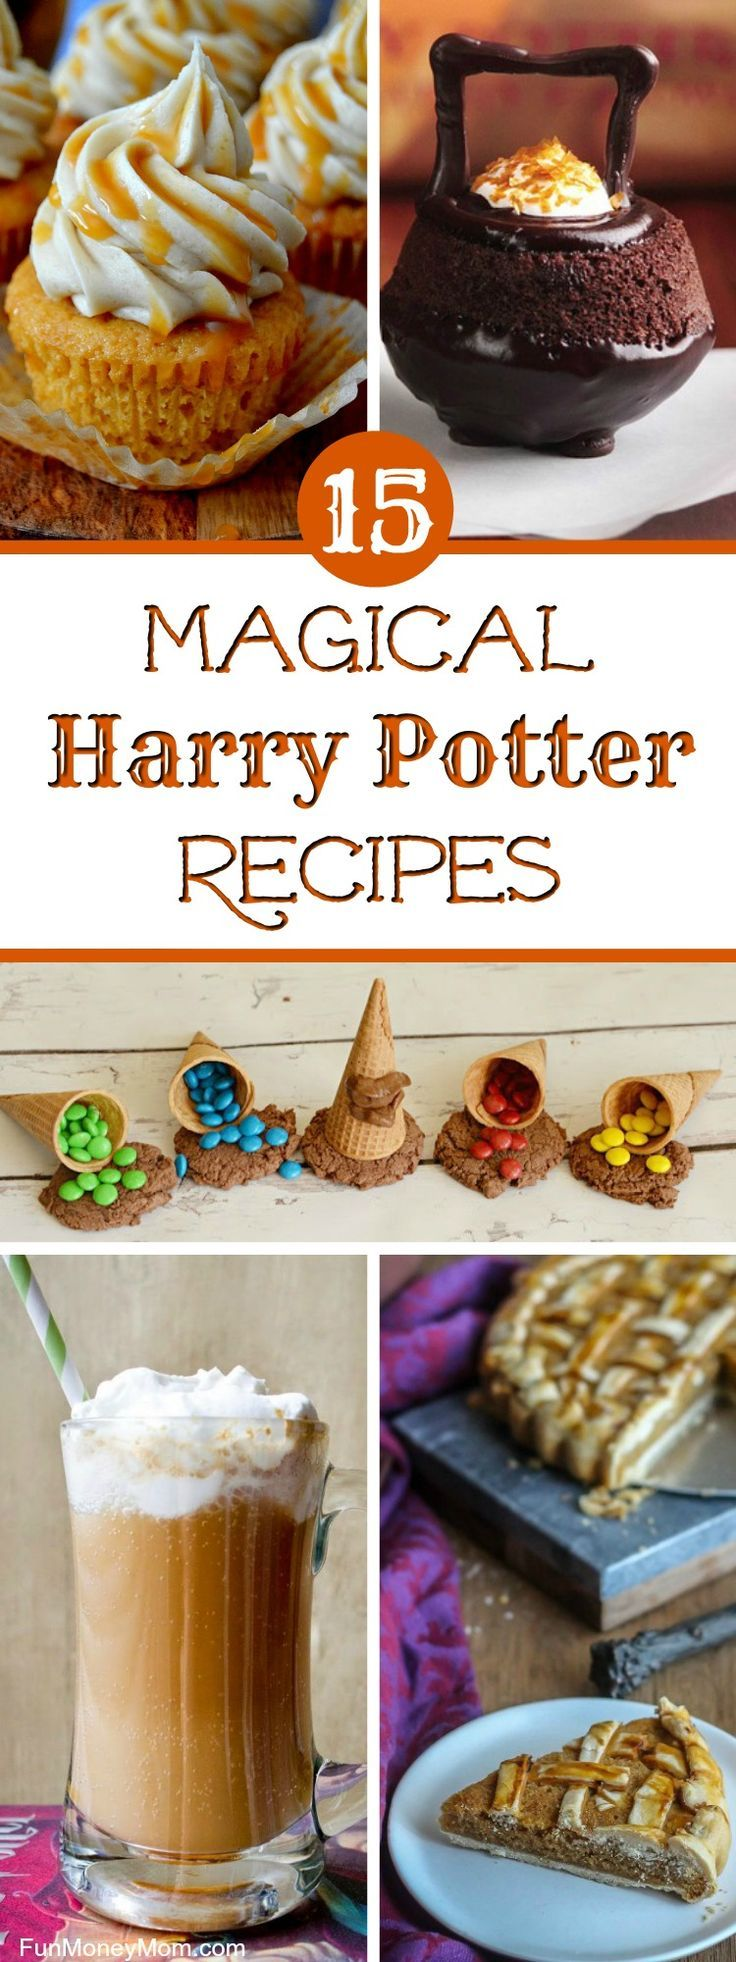 Having a Harry Potter party? You'll want to serve some magical Harry Potter recipes! These Harry Potter inspired foods are perfect for kid's birthday parties or even a Harry Potter movie night. From Butterbeer, Cauldron Cakes, Acid Pops and more, your little wizards will have everything they need for the perfect Harry Potter birthday! via @funmoneymom